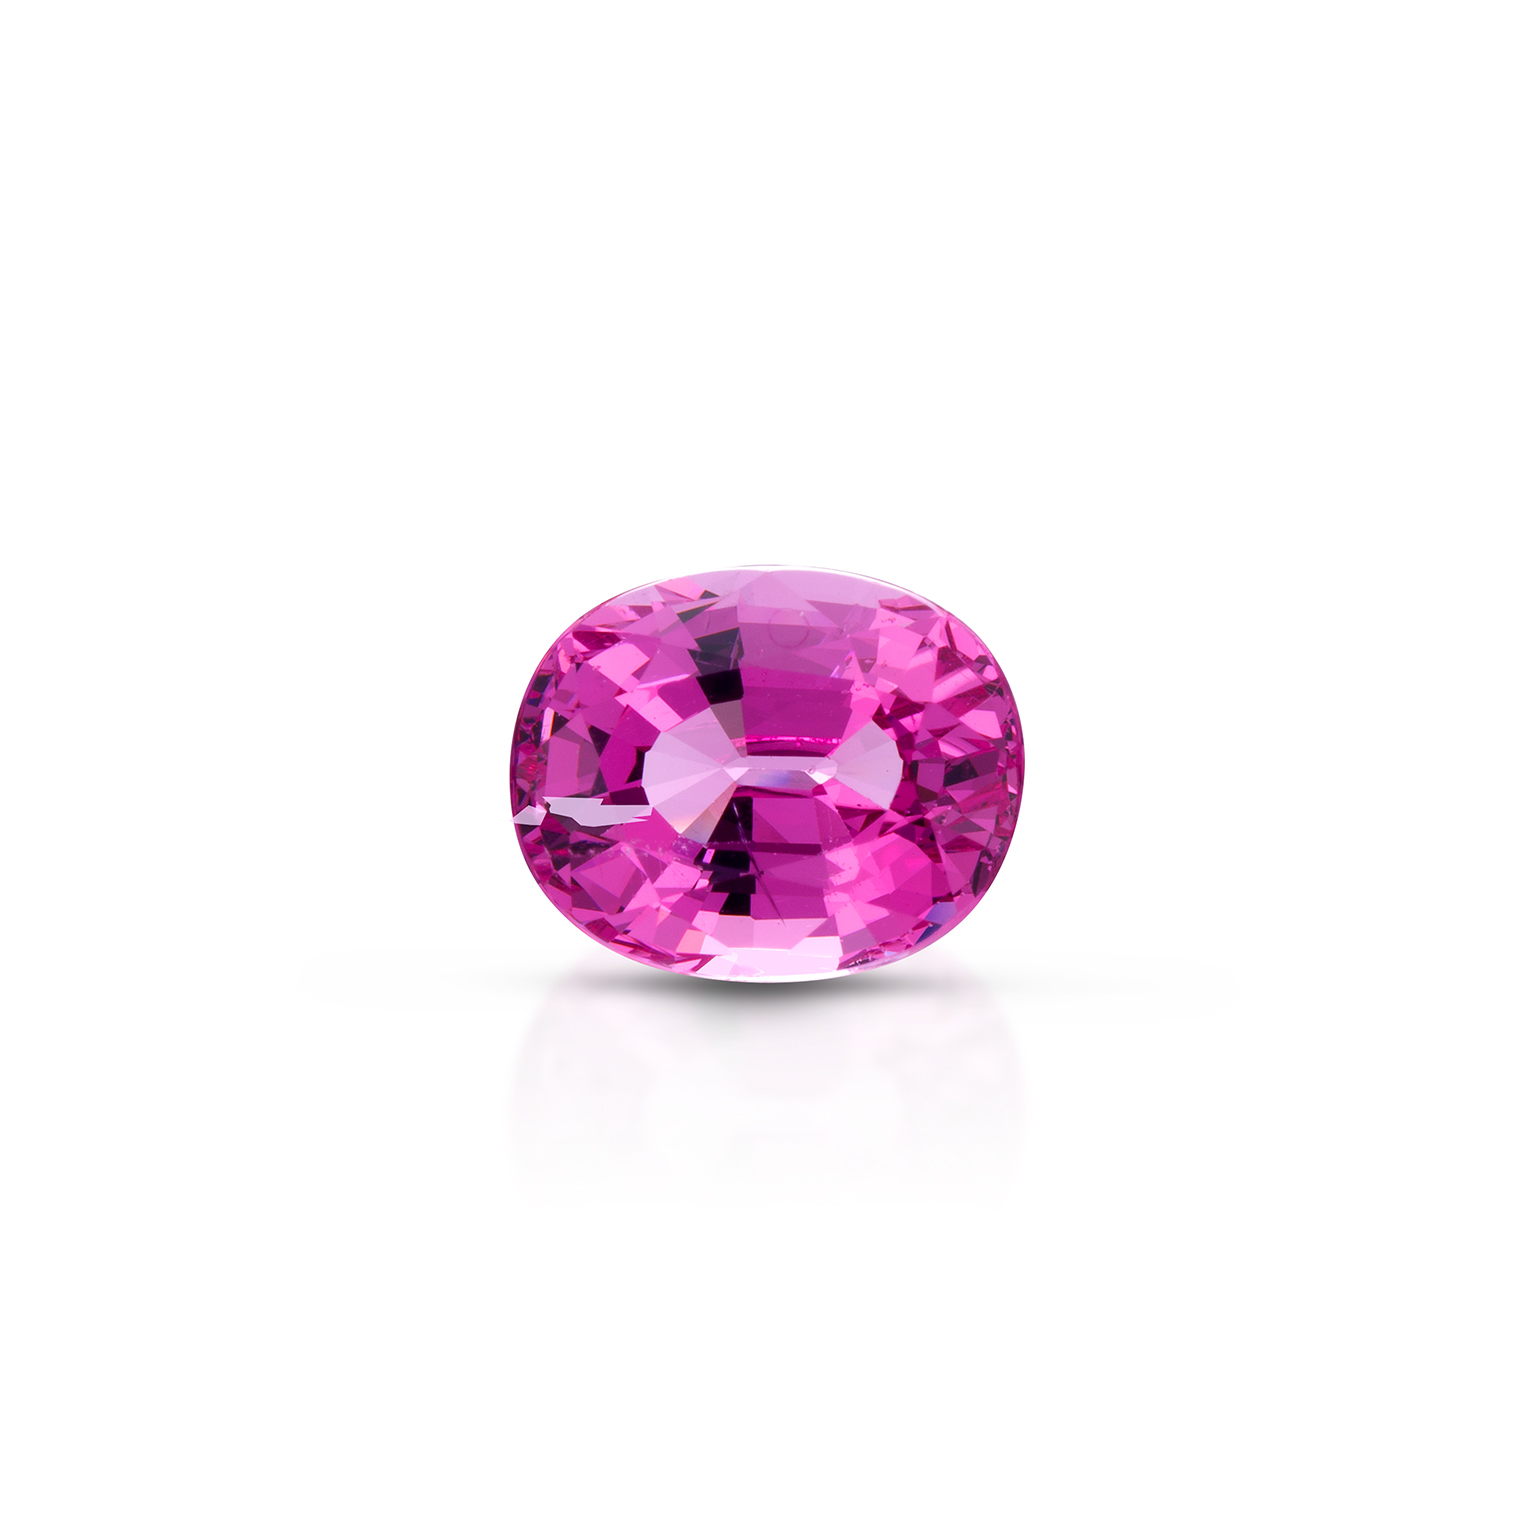 ClaudiaHamann_Spinel_Tanzania_StepCut_Oval_2,89_snf11c47